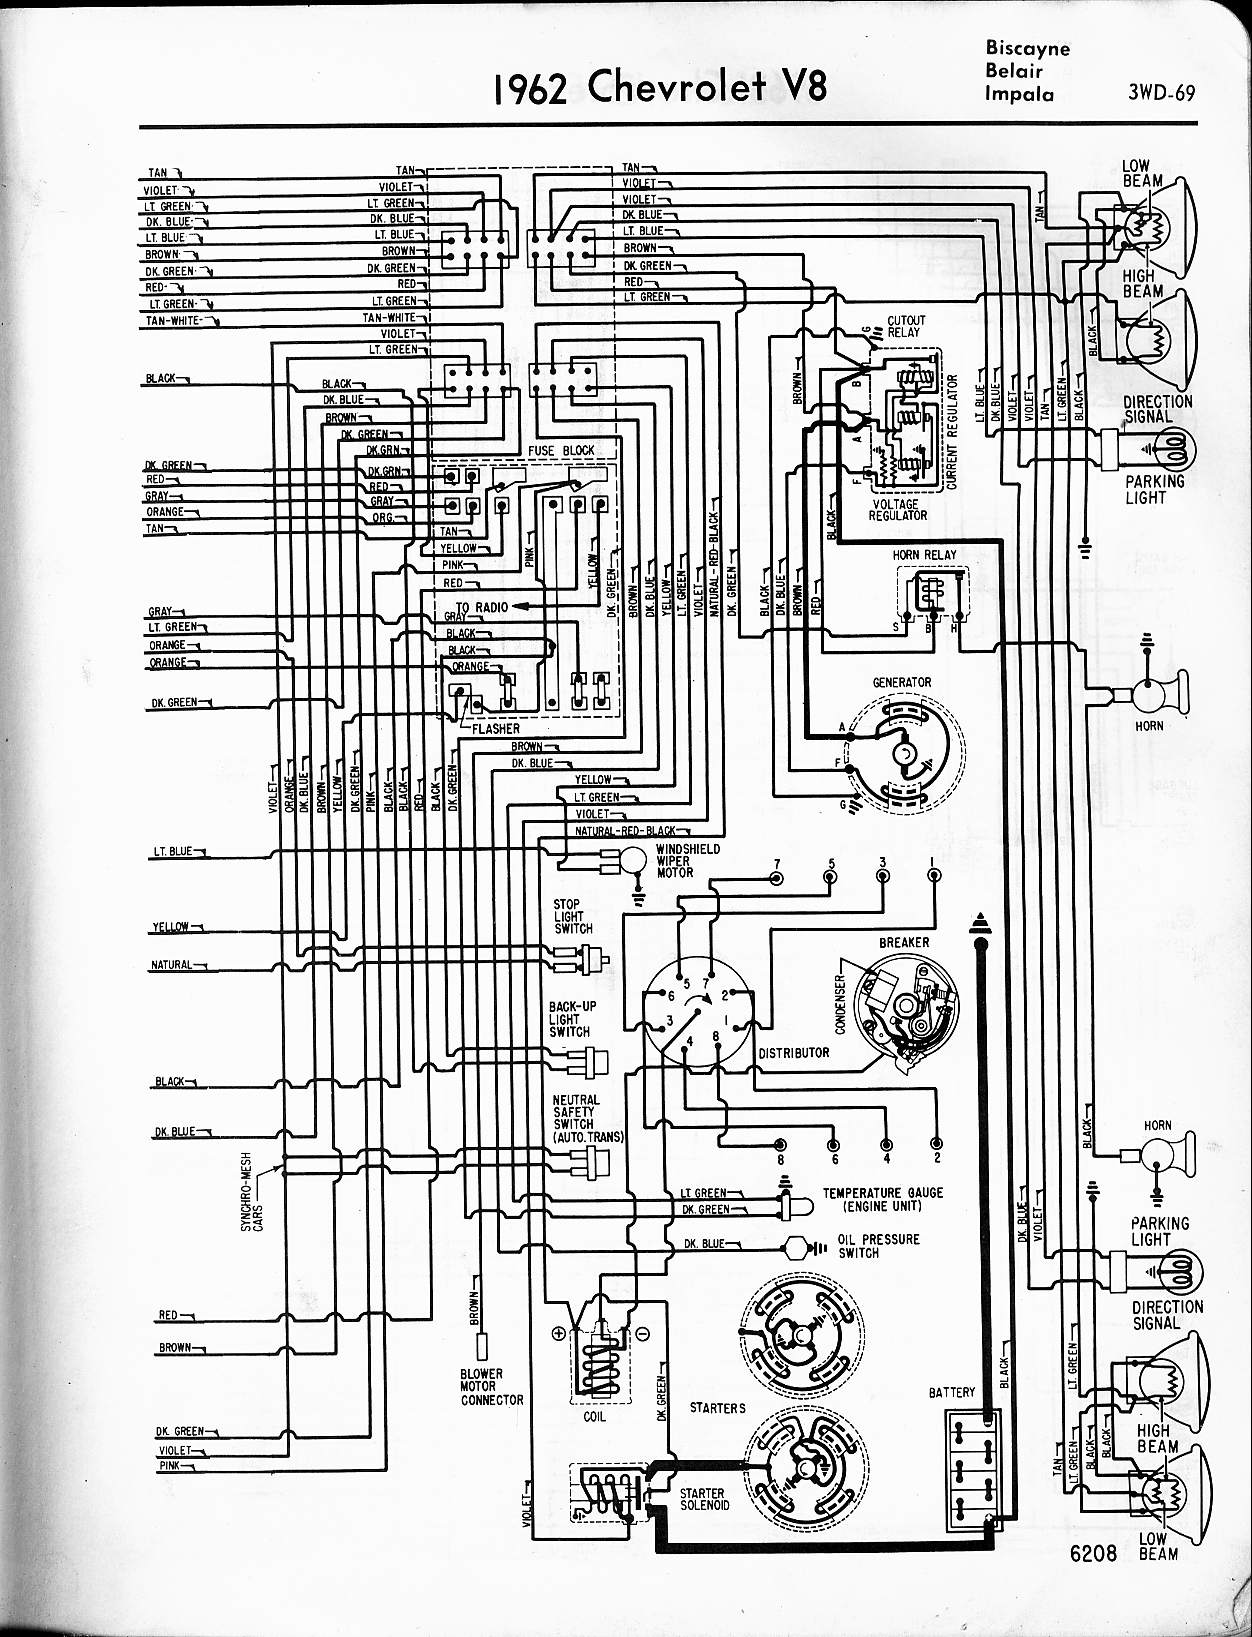 63 Chevy Wiring Diagram Data Chevrolet Alternator Moreover 1964 Impala 55 57 65